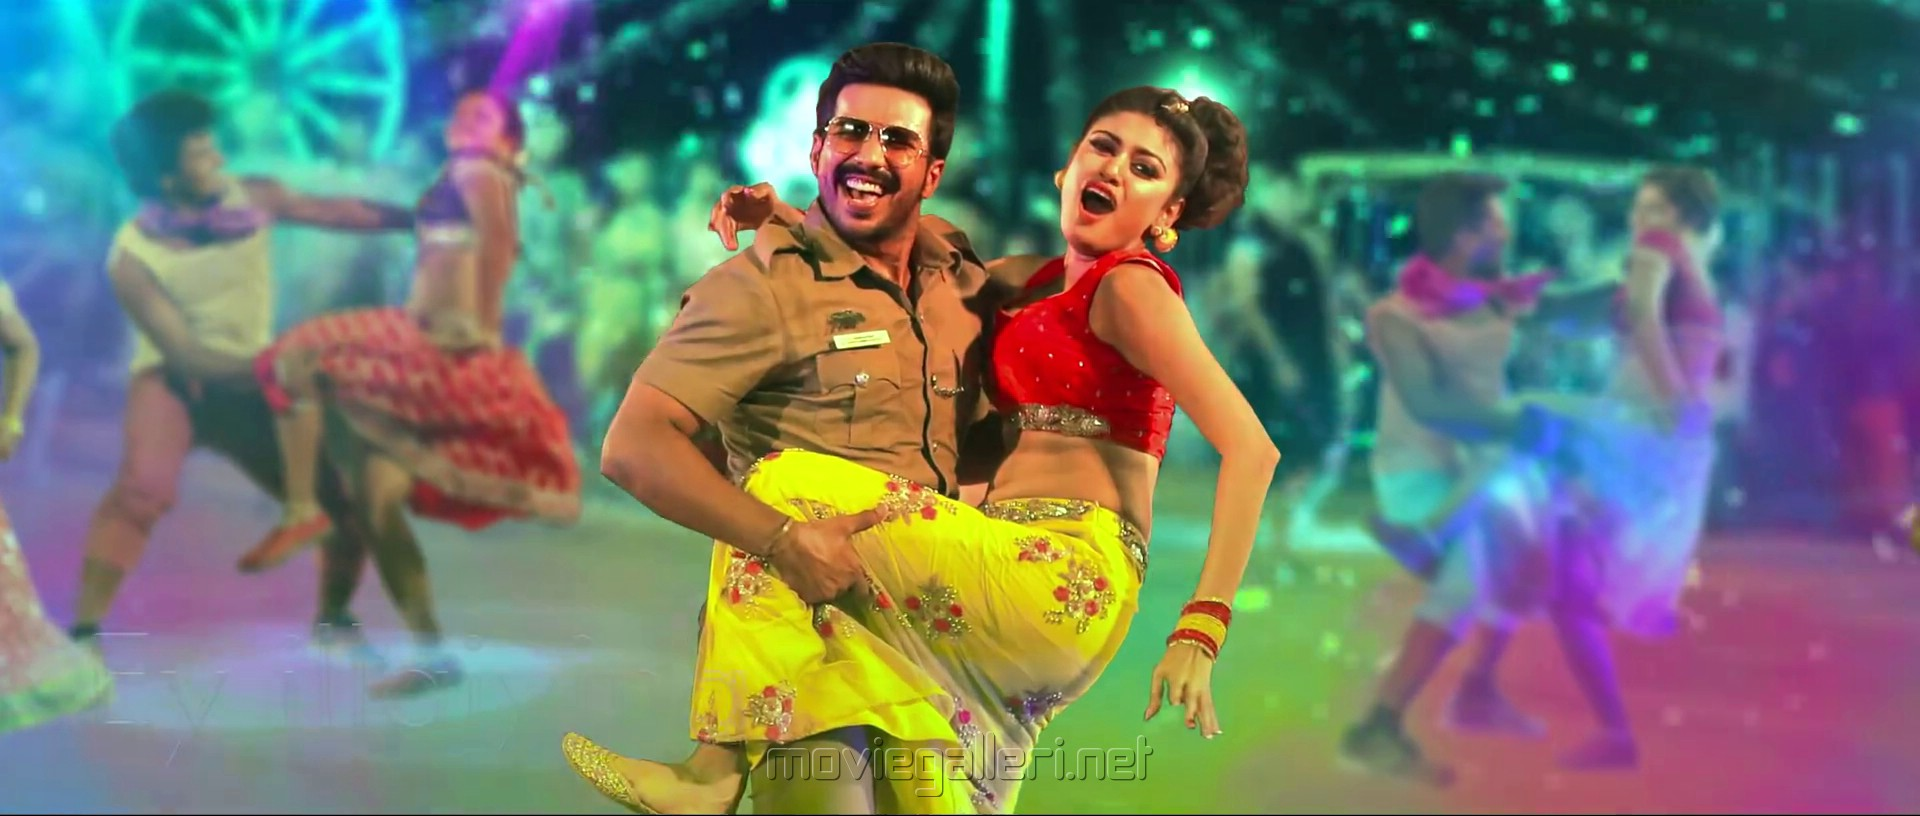 Vishnu Vishal, Oviya in Silukkuvarupatti Singam Movie Item Song Stills HD